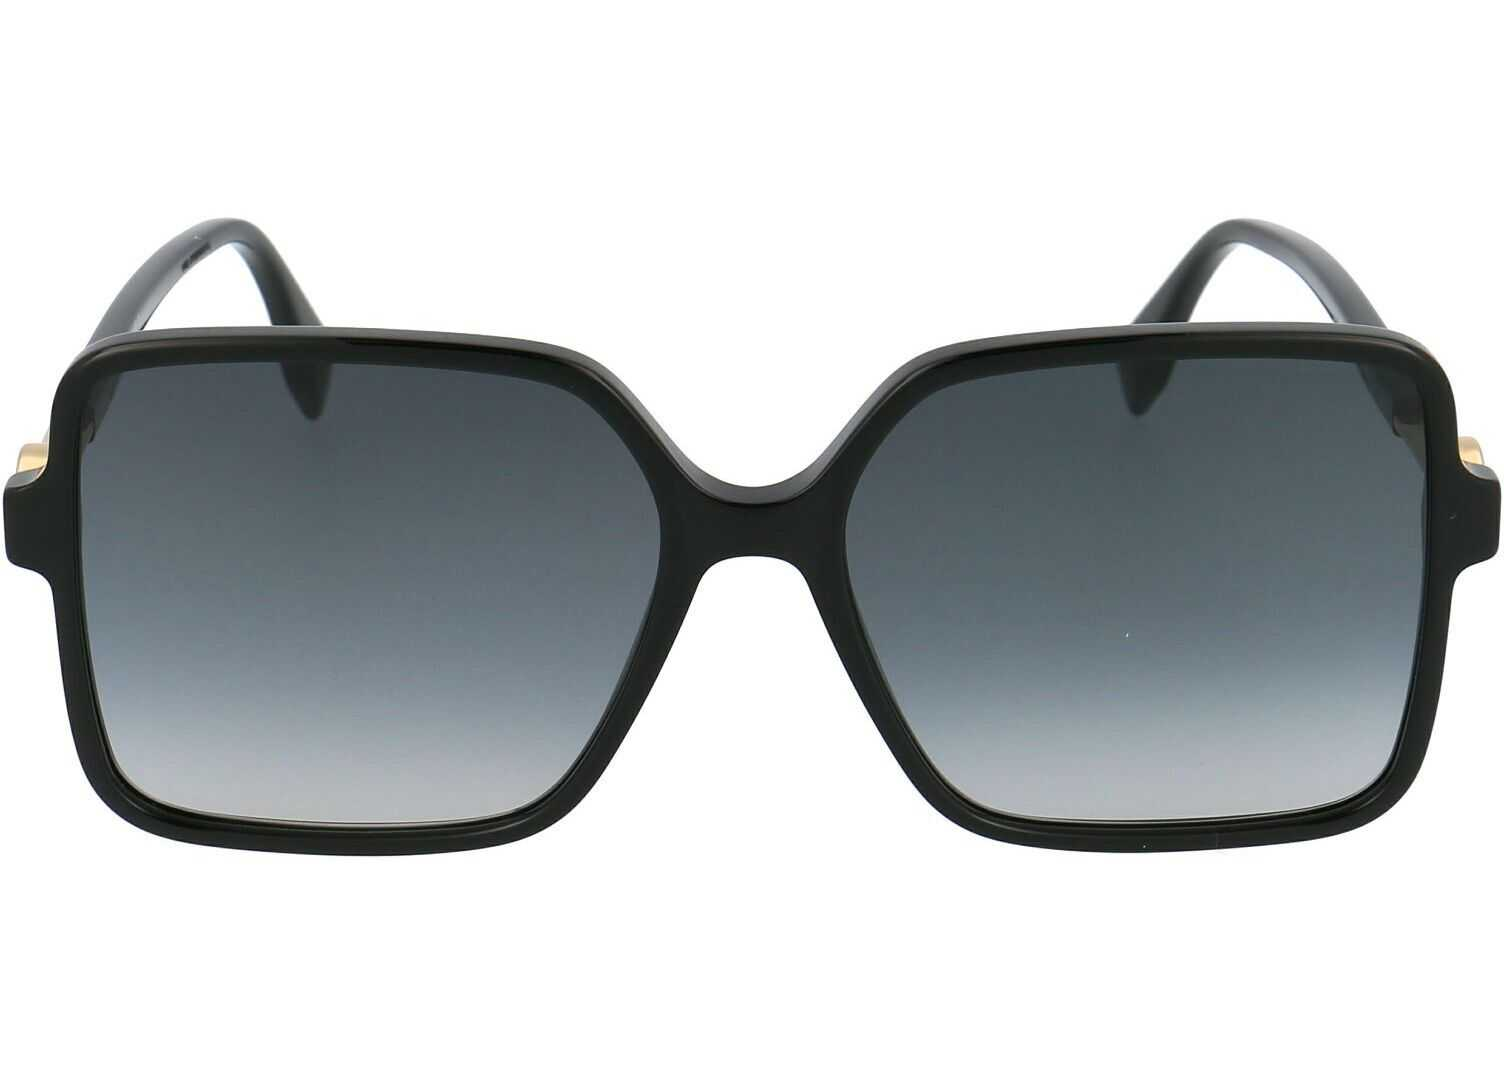 Fendi Acetate Sunglasses BLACK